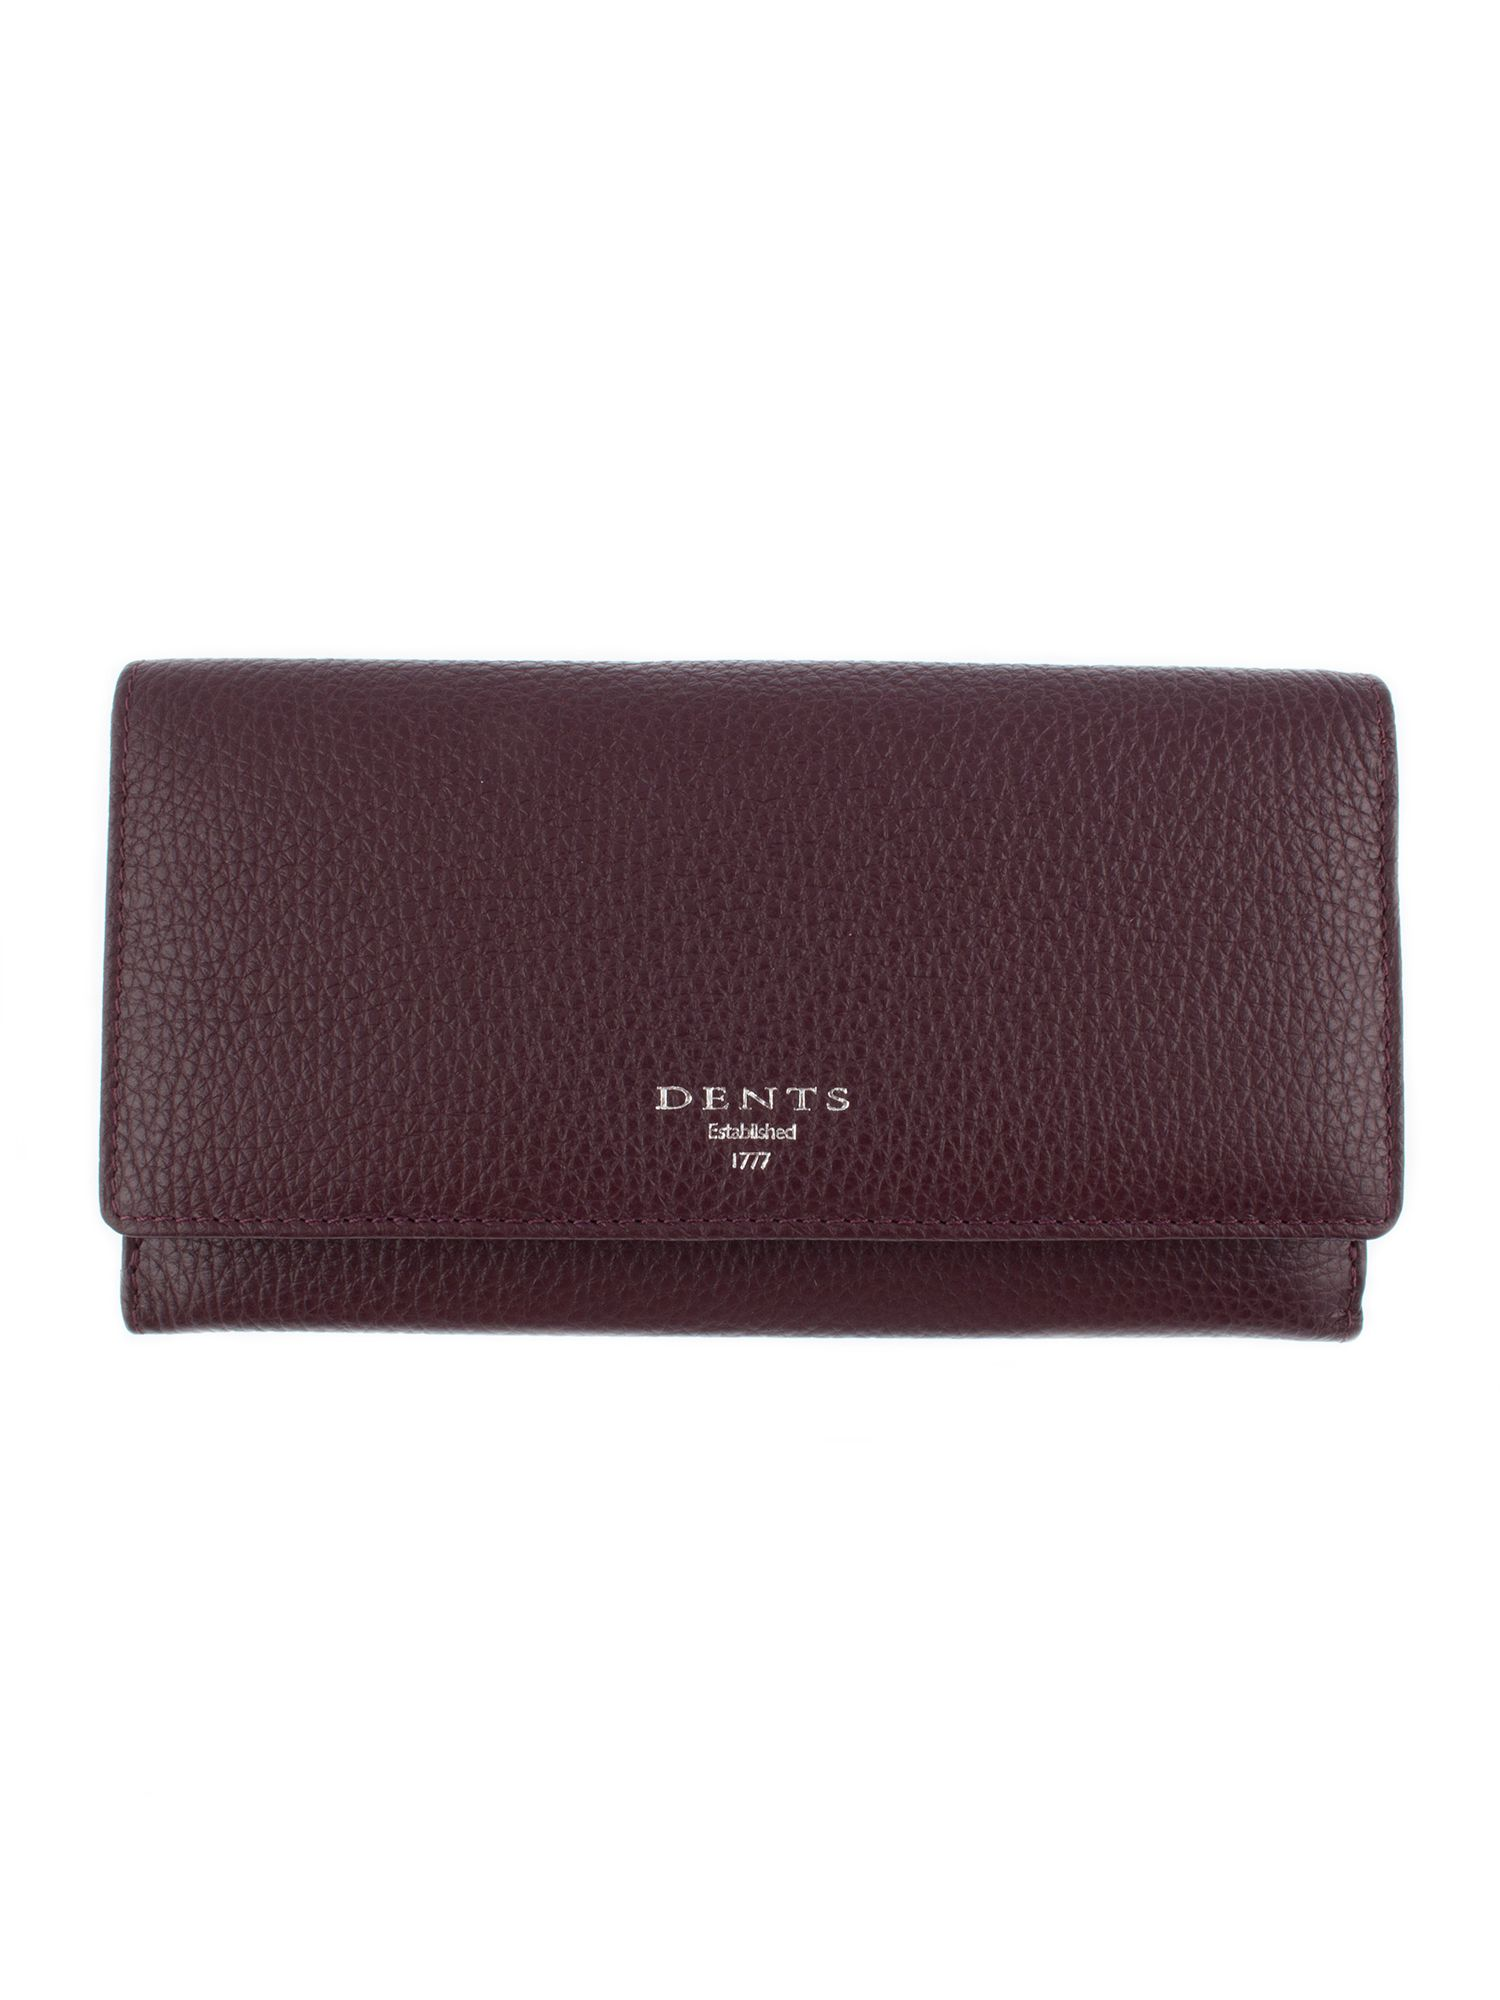 Dents DENTS Leather Purse With RFID Protection, Red